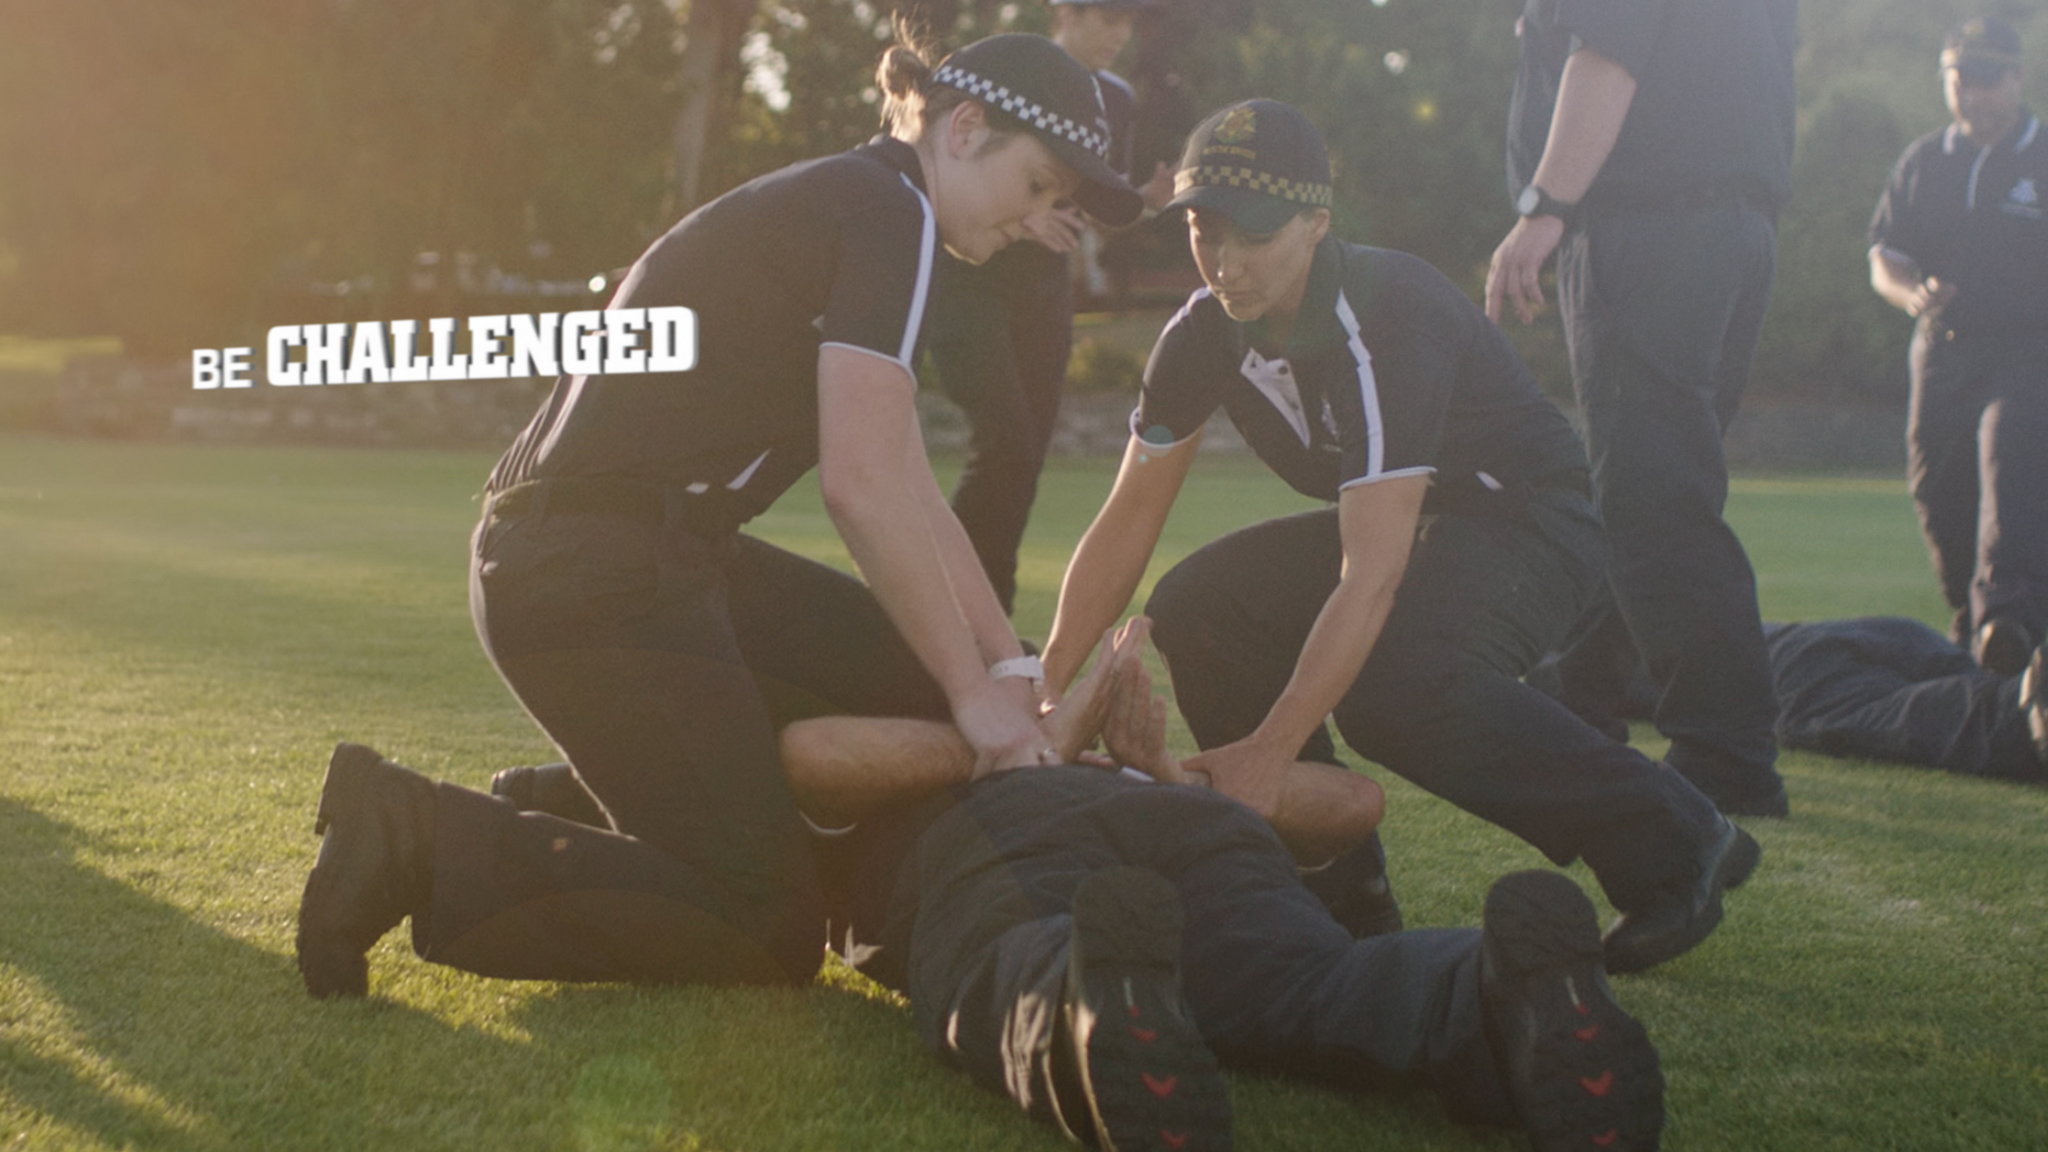 15_VIC_POLICE_TVC - BE CHALLENGED (00146)